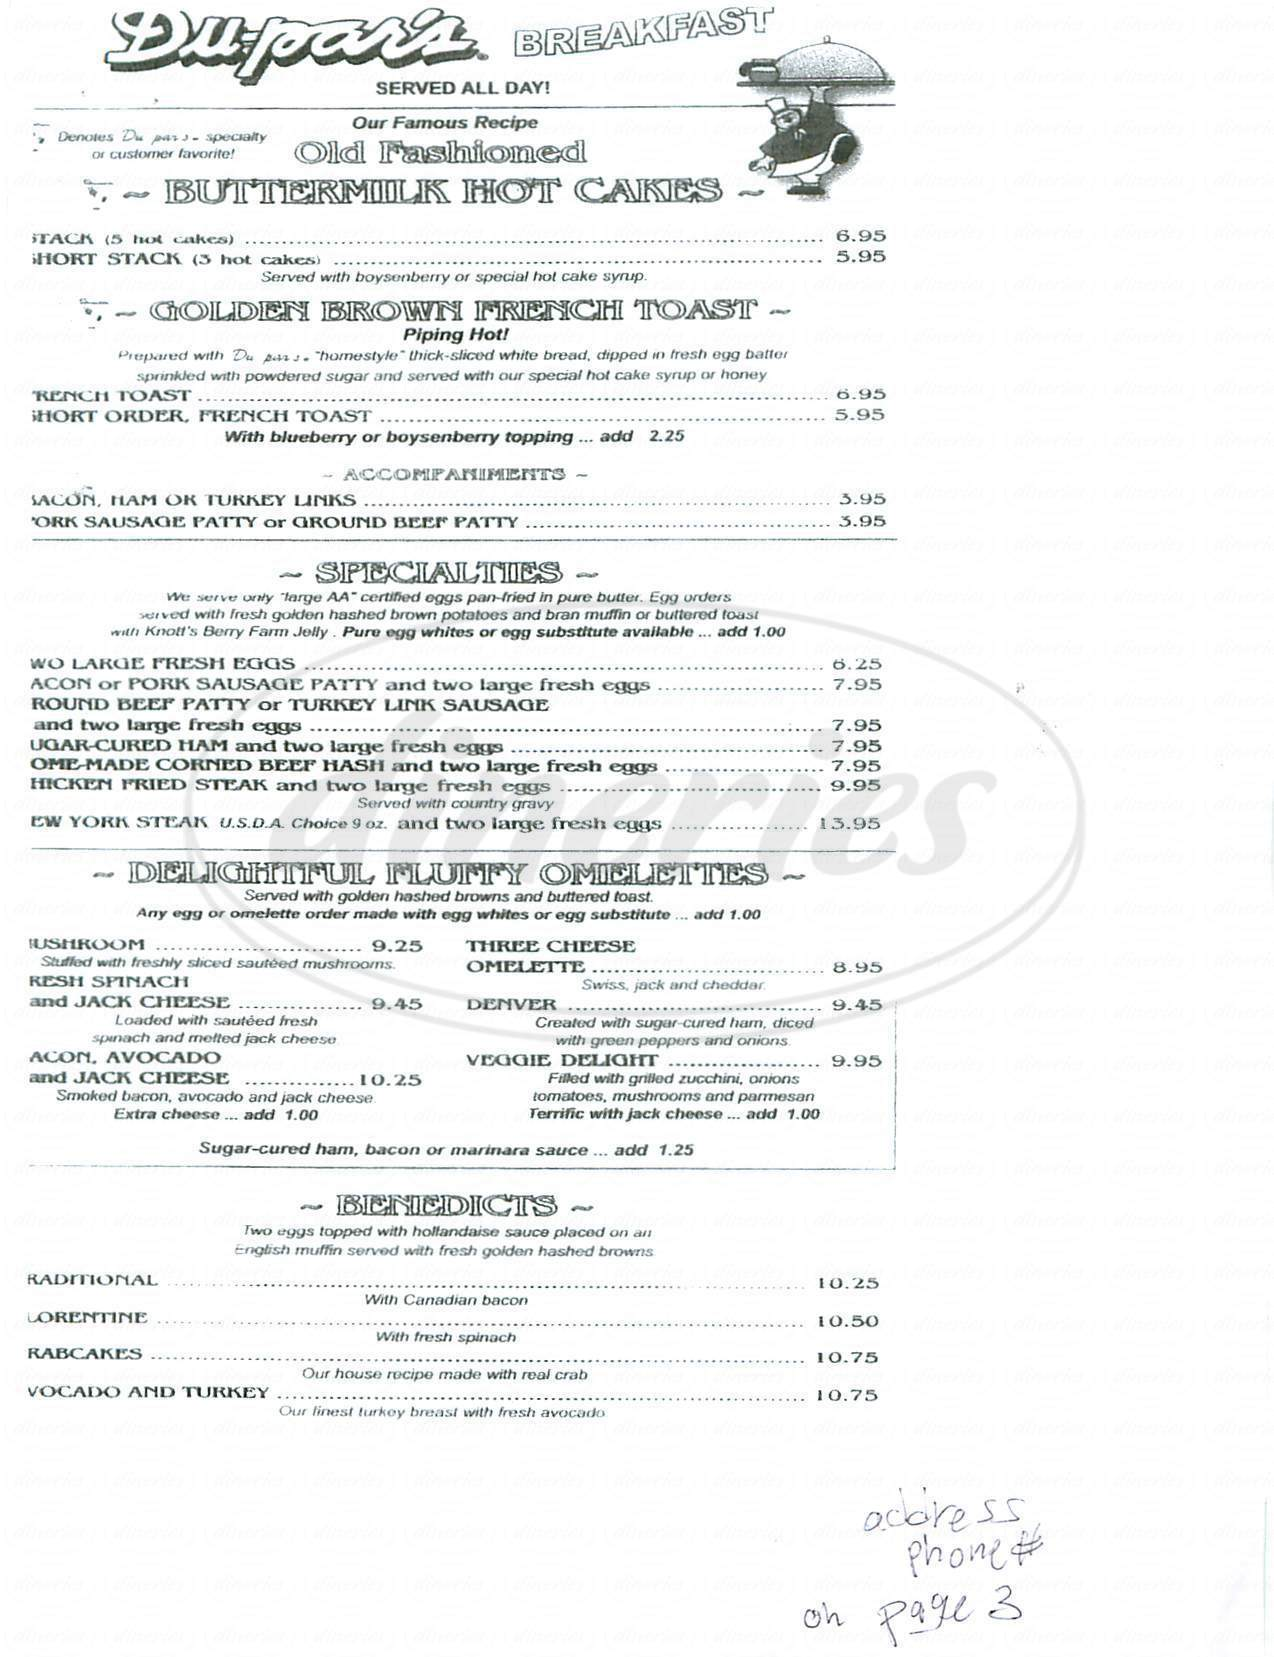 menu for Du Pars Restaurants & Bakeries